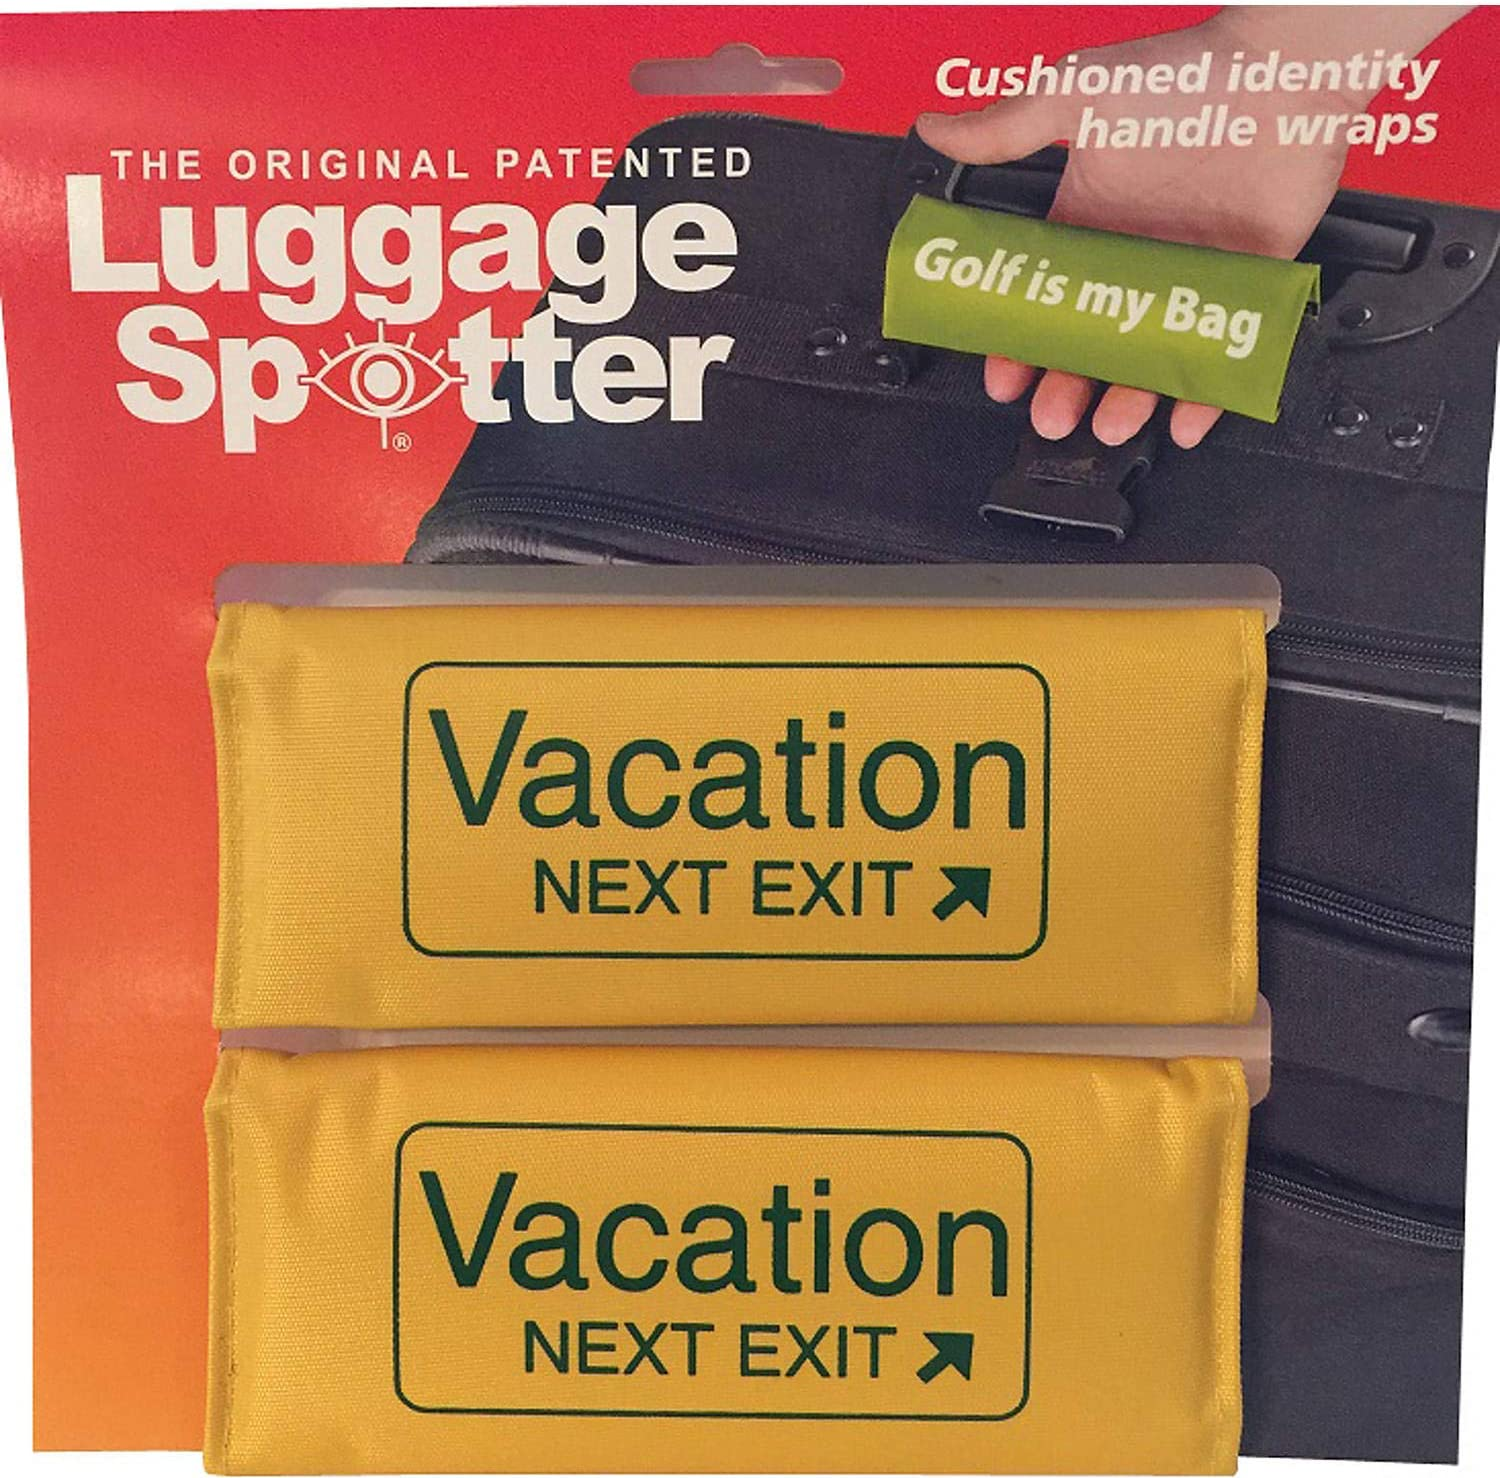 Vacation Next EXIT Luggage Locator//Handle Grip//Luggage Grip//Travel Bag Tag//Luggage Handle Wrap Luggage Spotter Buy ONE GET ONE Free 4 Pack Yellow